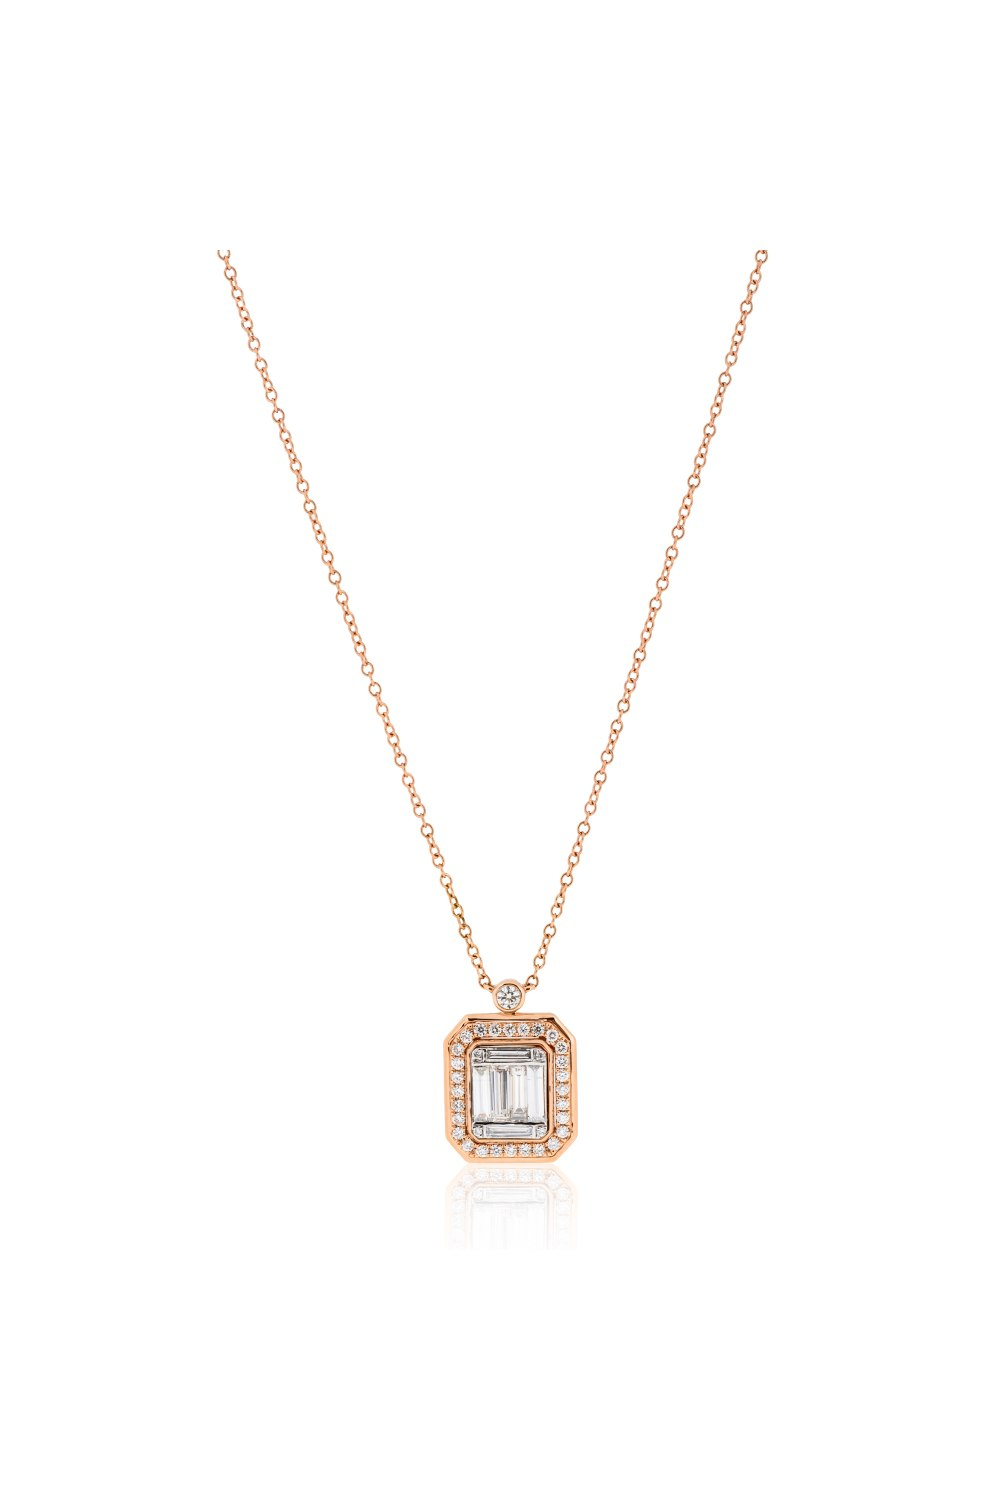 Kessaris-Diamond Cluster Emerald Pendant Necklace